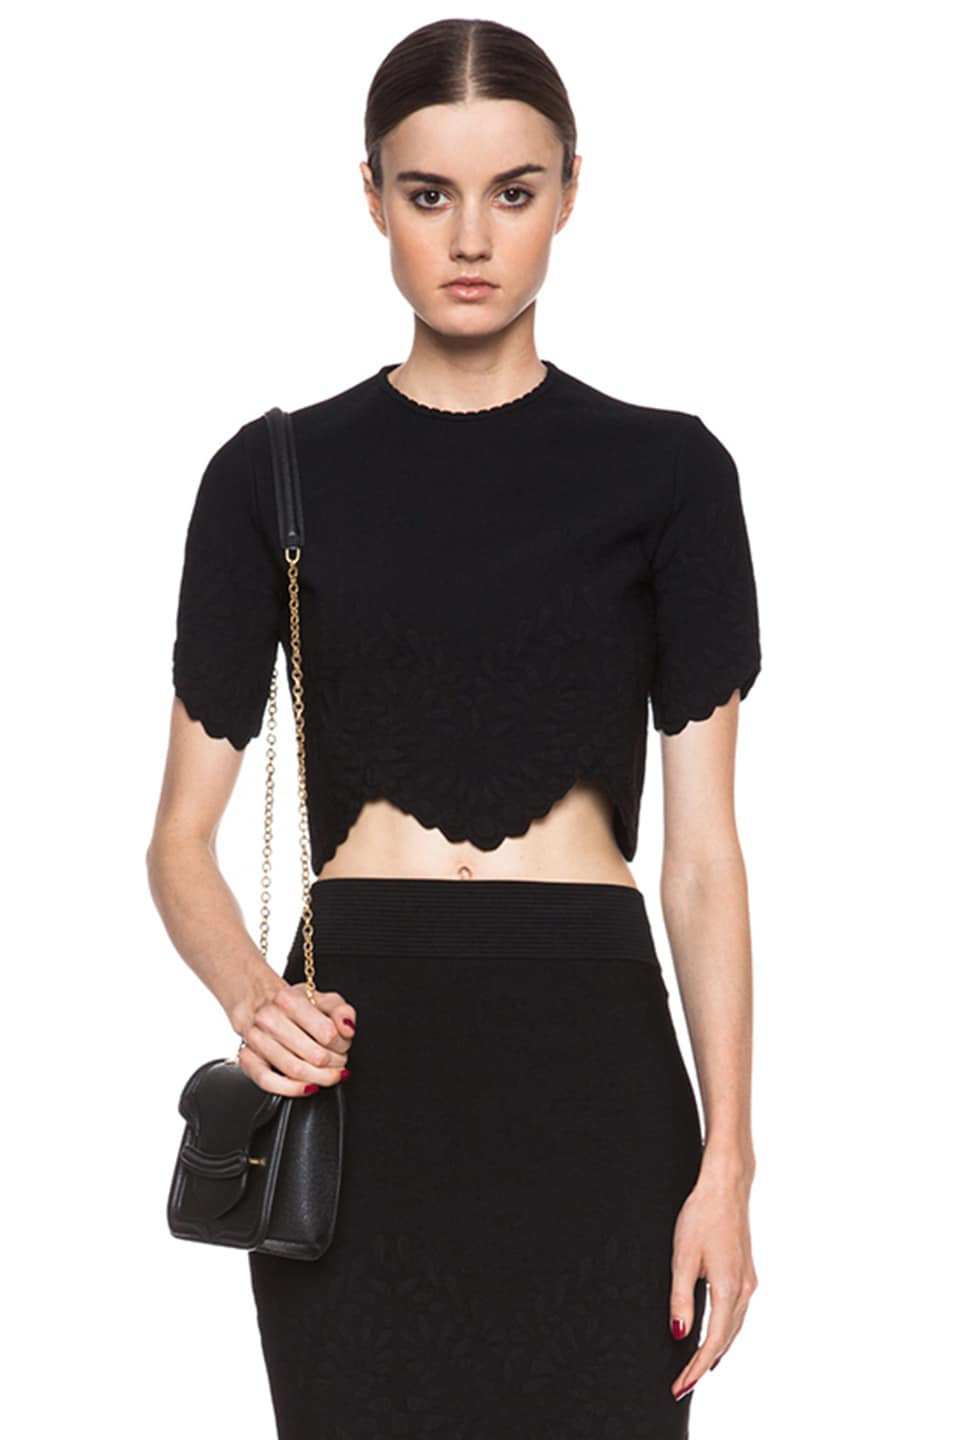 d84608f413c0 Alexander McQueen Embossed Knit Crop Top in Black